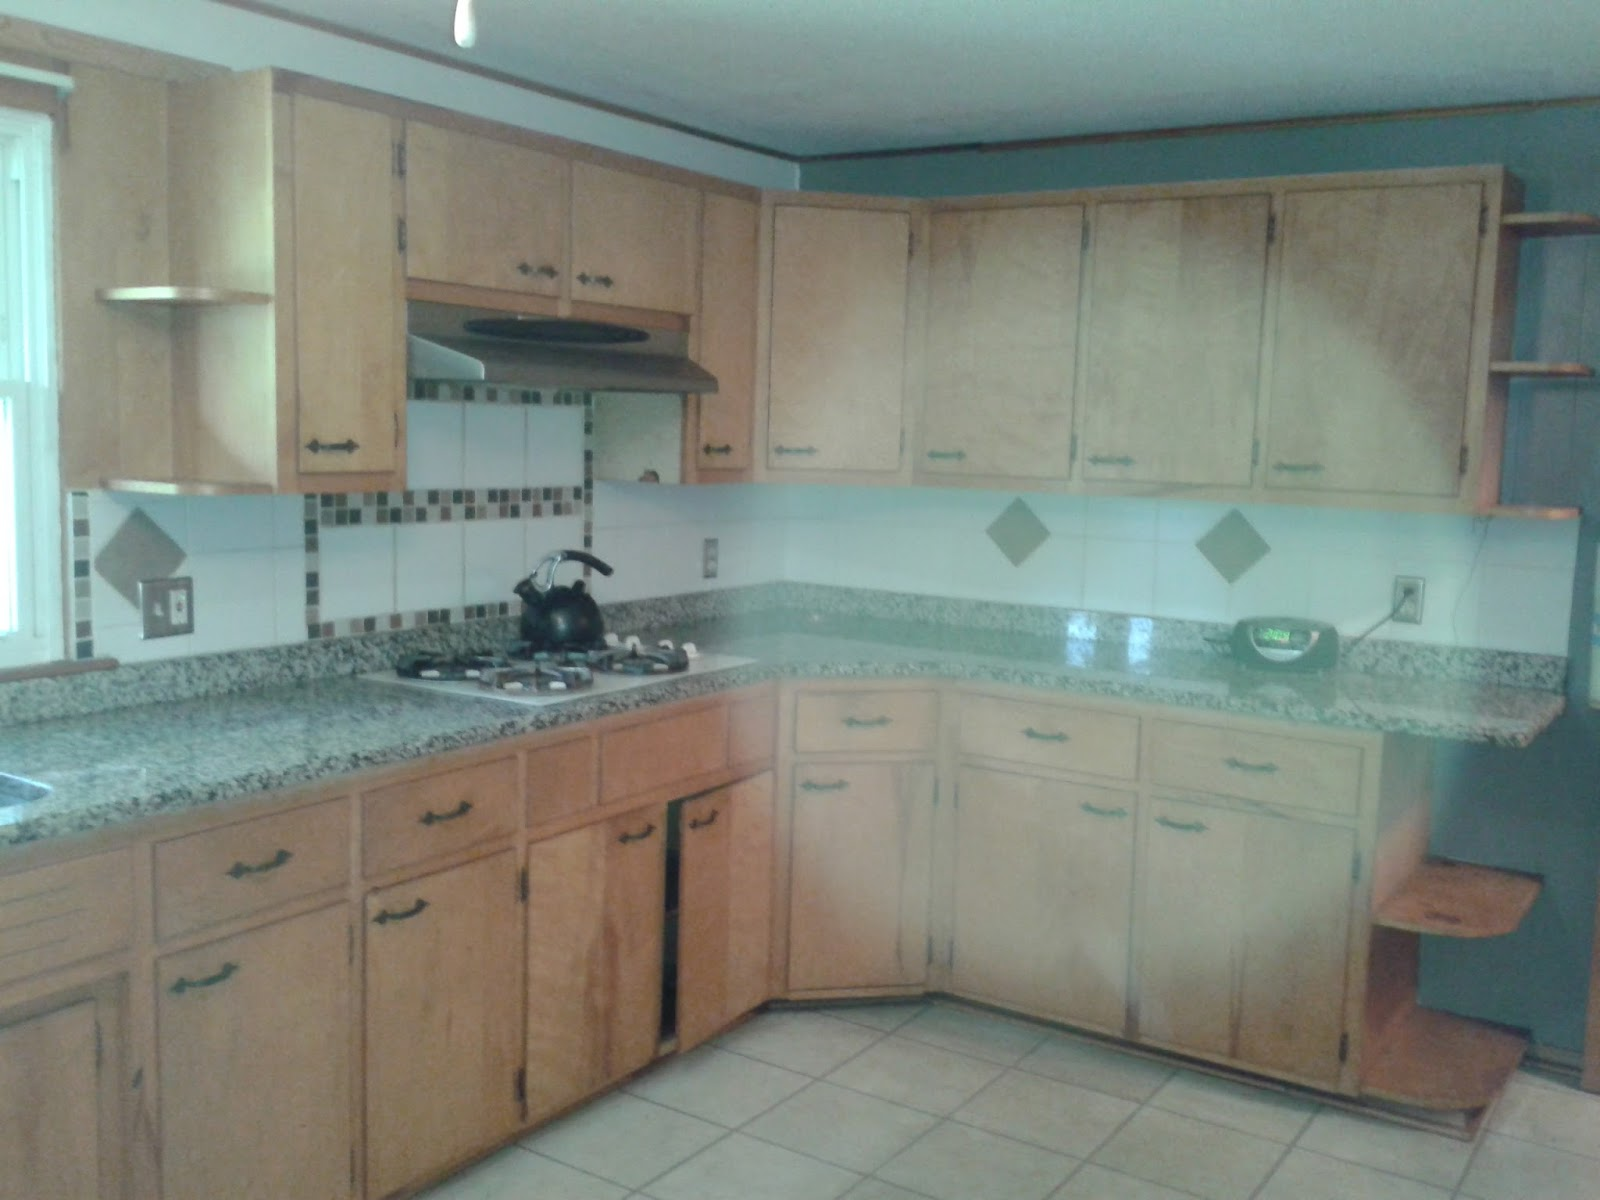 Refinish kitchen cabinets charlotte nc -  Cabinets So We Can Replace Any Worn Or Damaged Cabinetry Most Projects Are 100 Completed In 4 5 Days After The Installation Commences